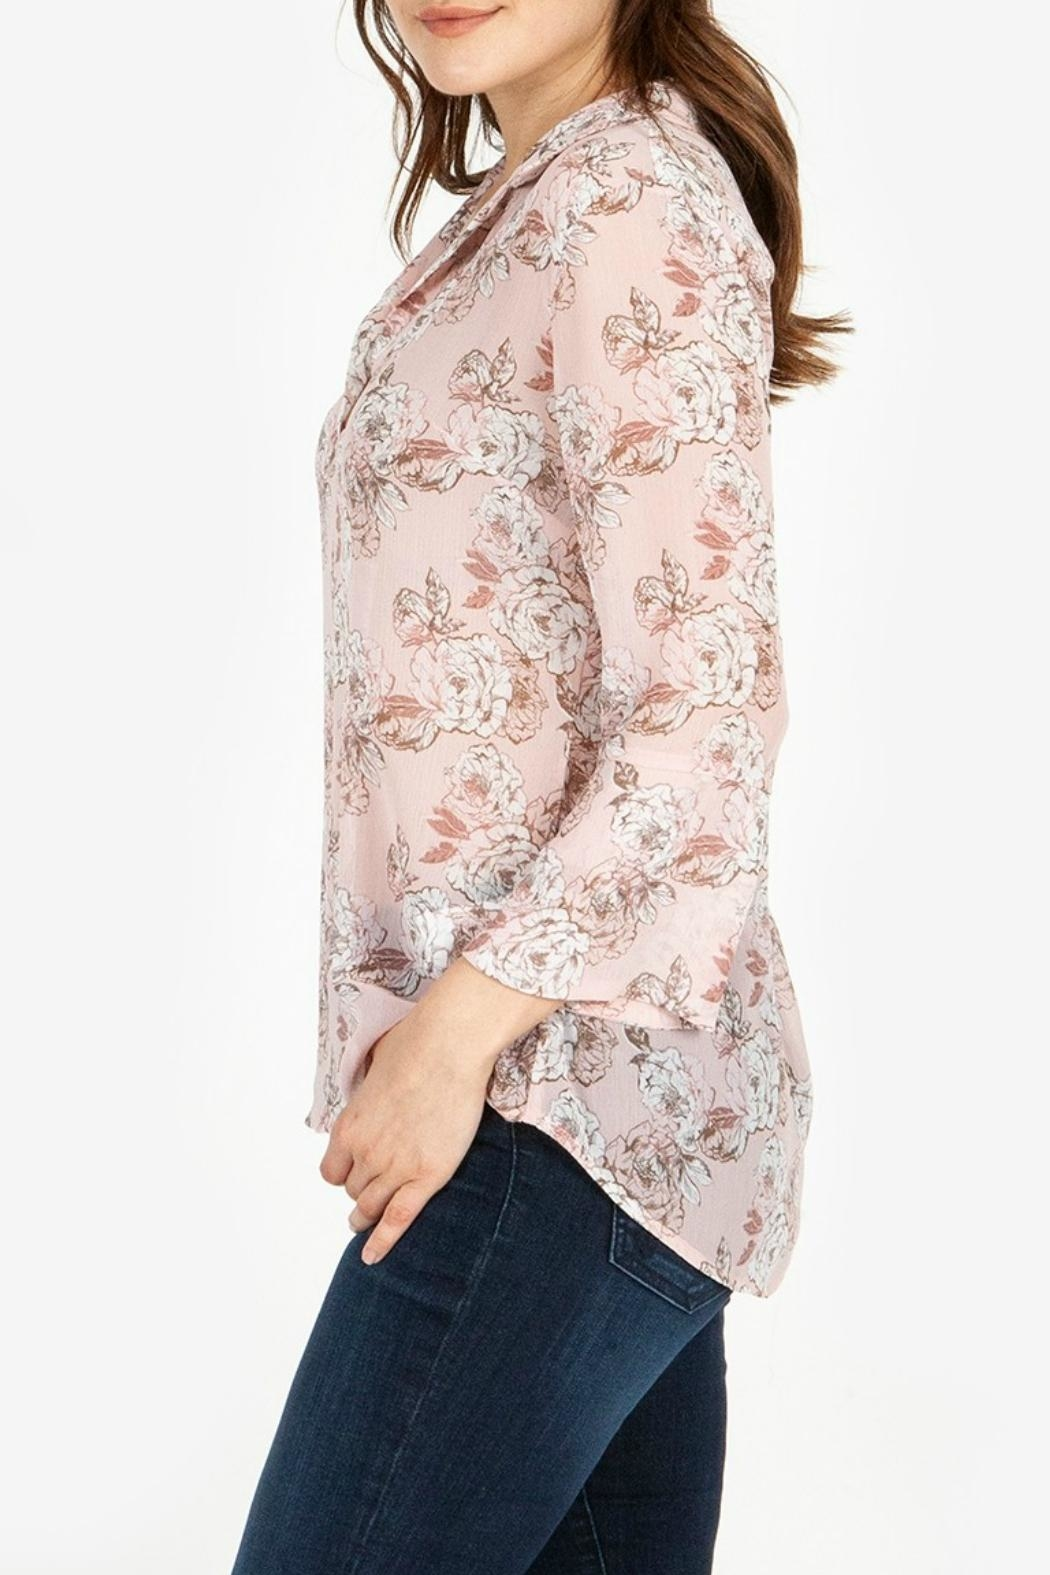 Kut from the Kloth Floral-Blouse With Flounce-Sleeves - Side Cropped Image